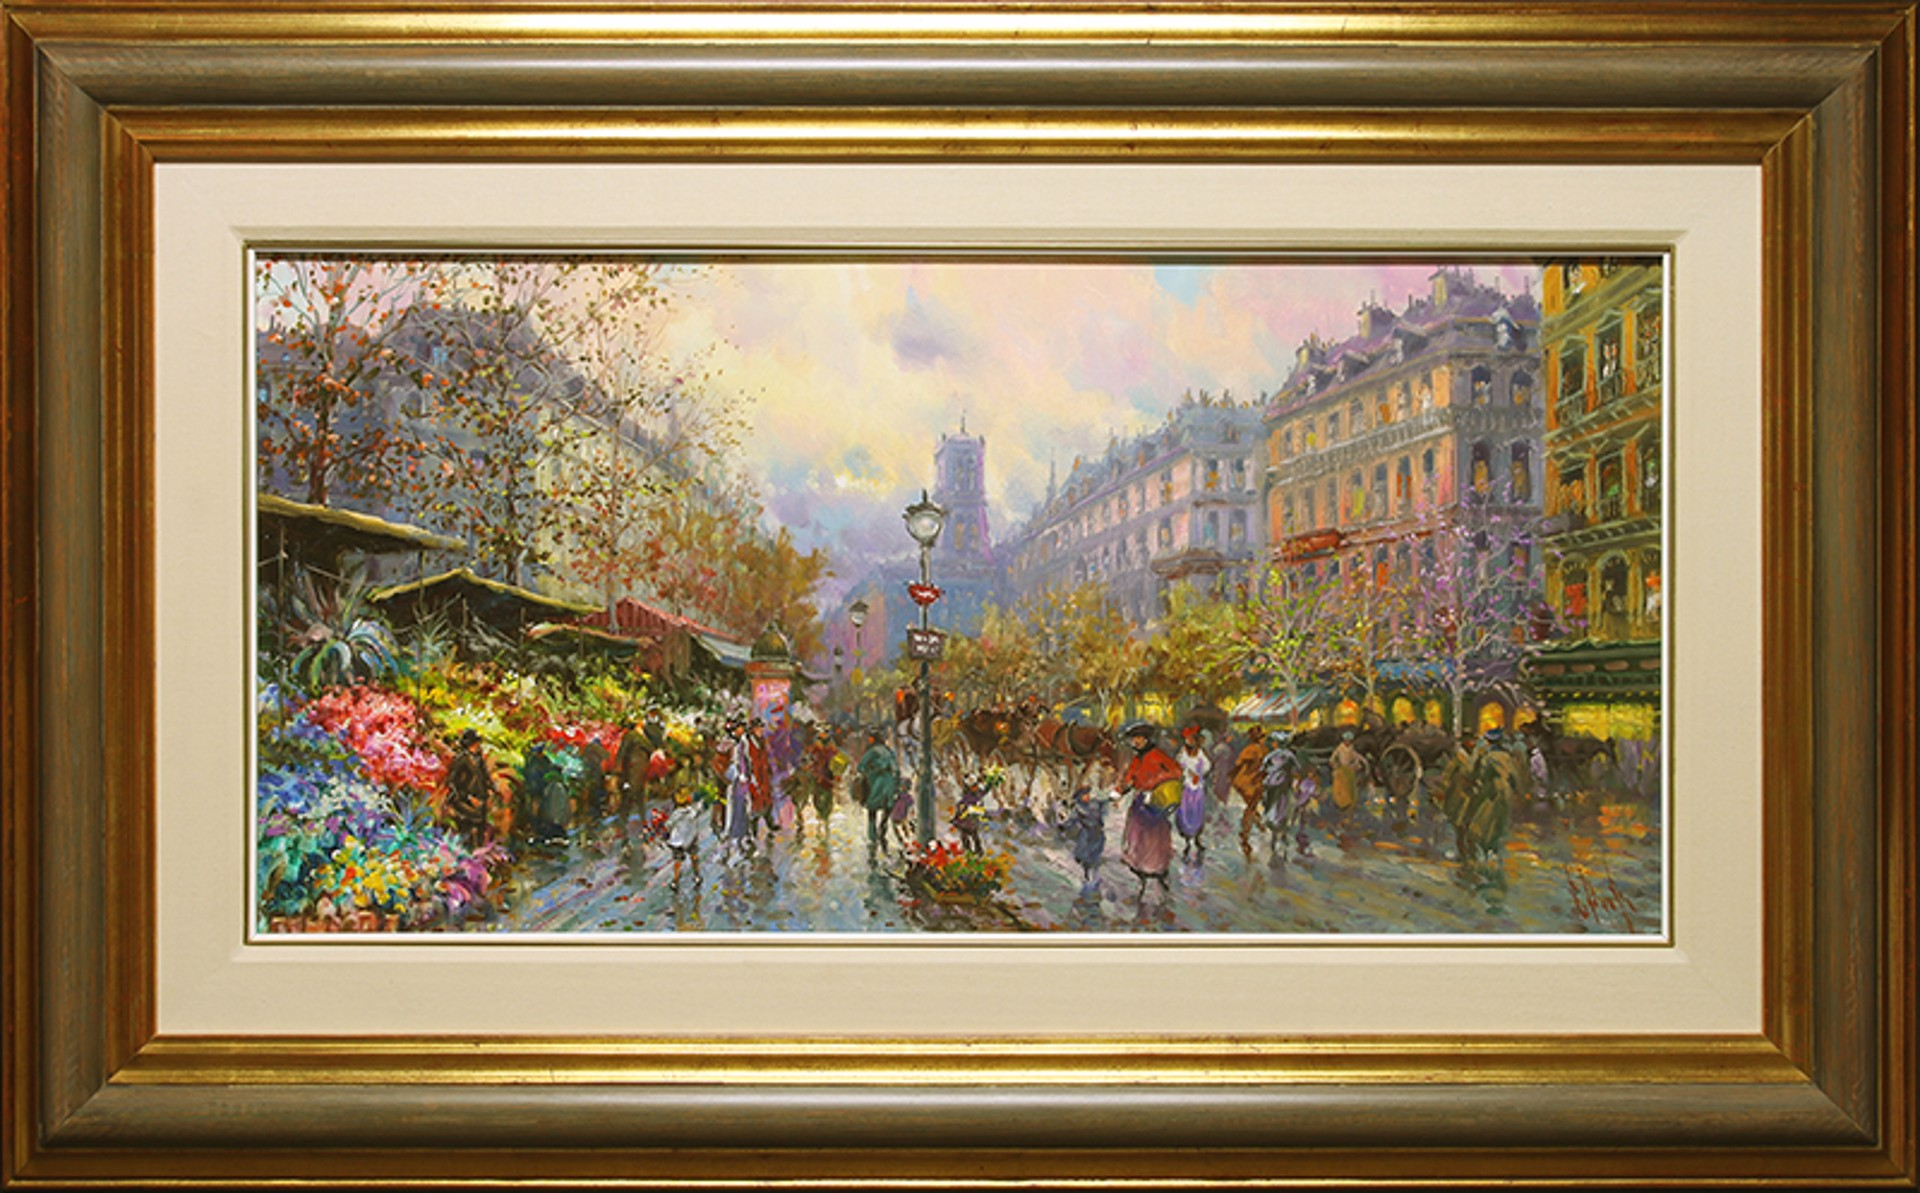 Dreaming of Paris by Emilio Payes